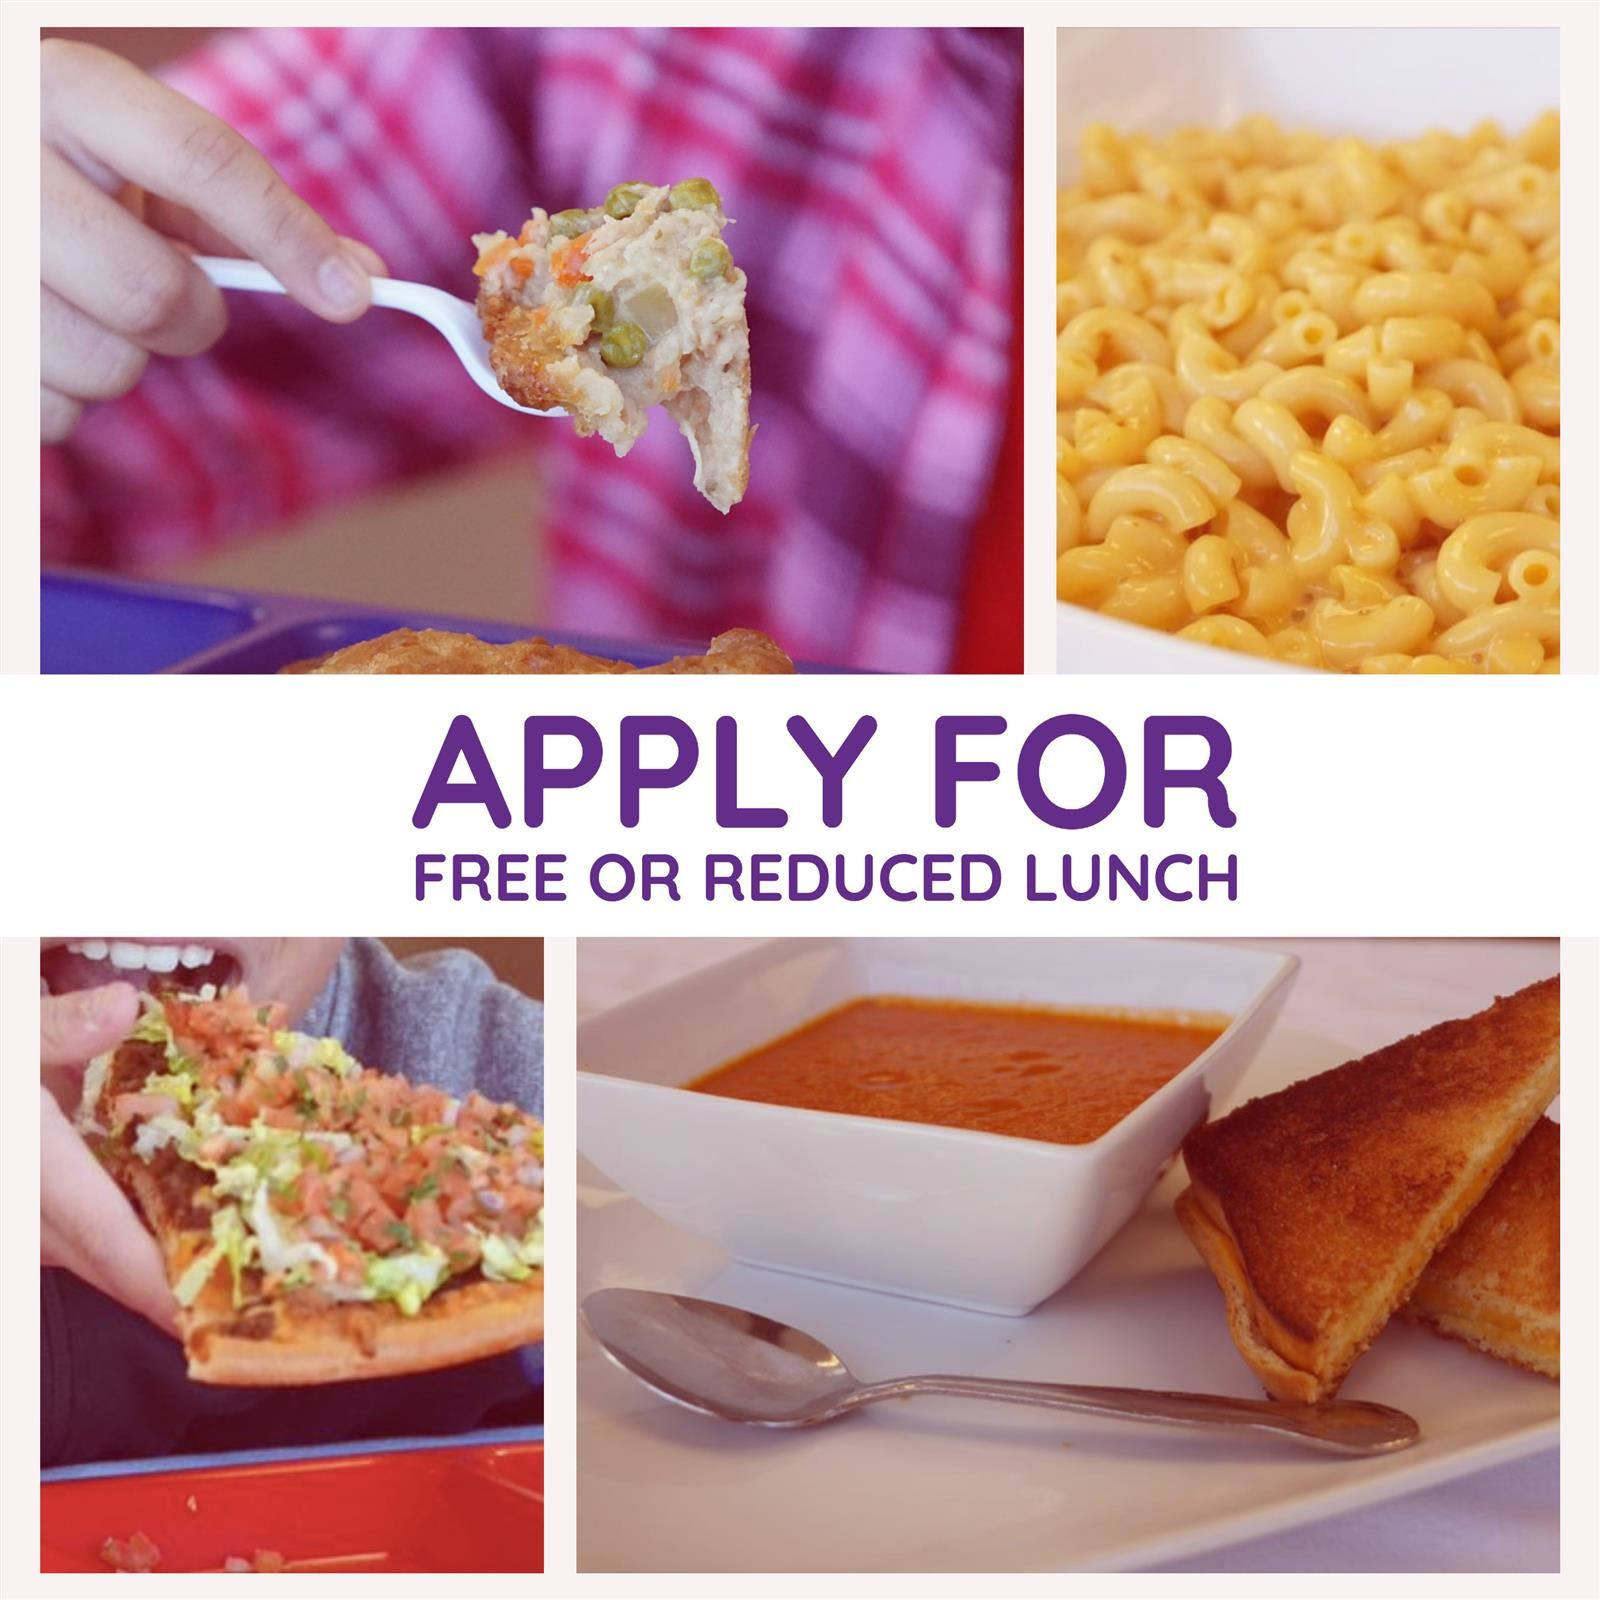 Apply for free/reduced meals today!